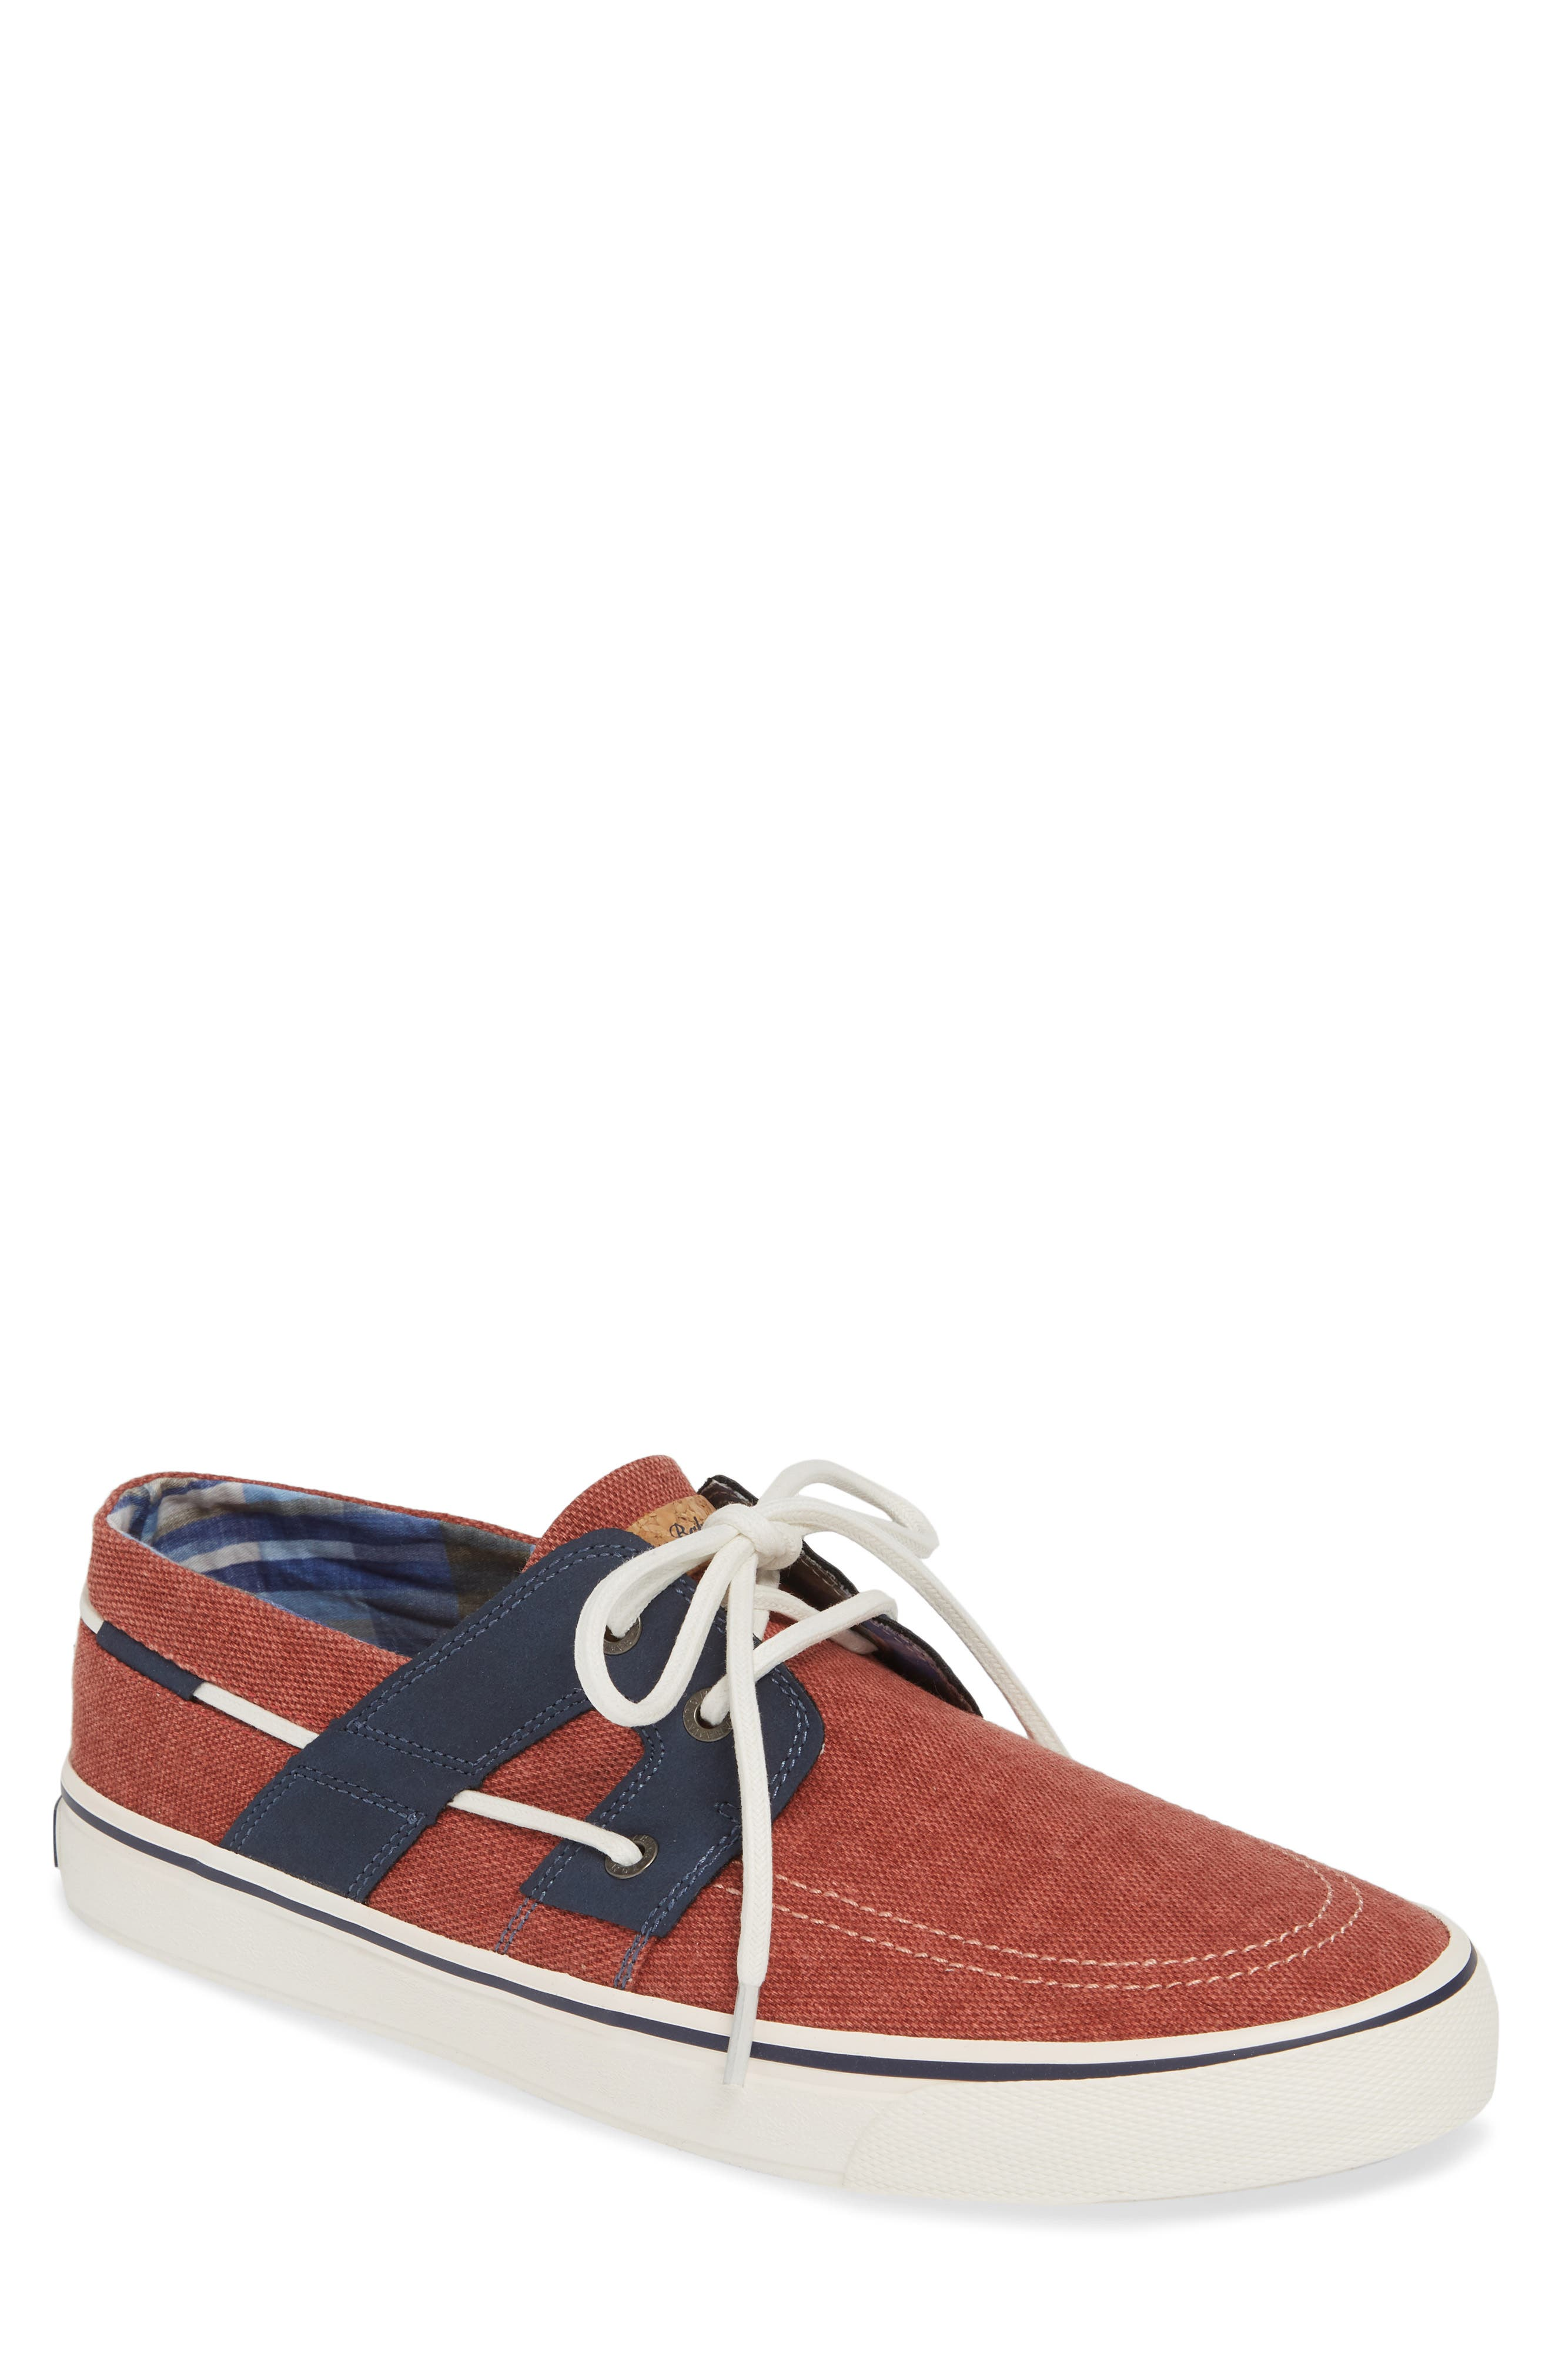 TOMMY BAHAMA Stripe Breaker Sneaker, Main, color, RED WASHED CANVAS/ LEATHER